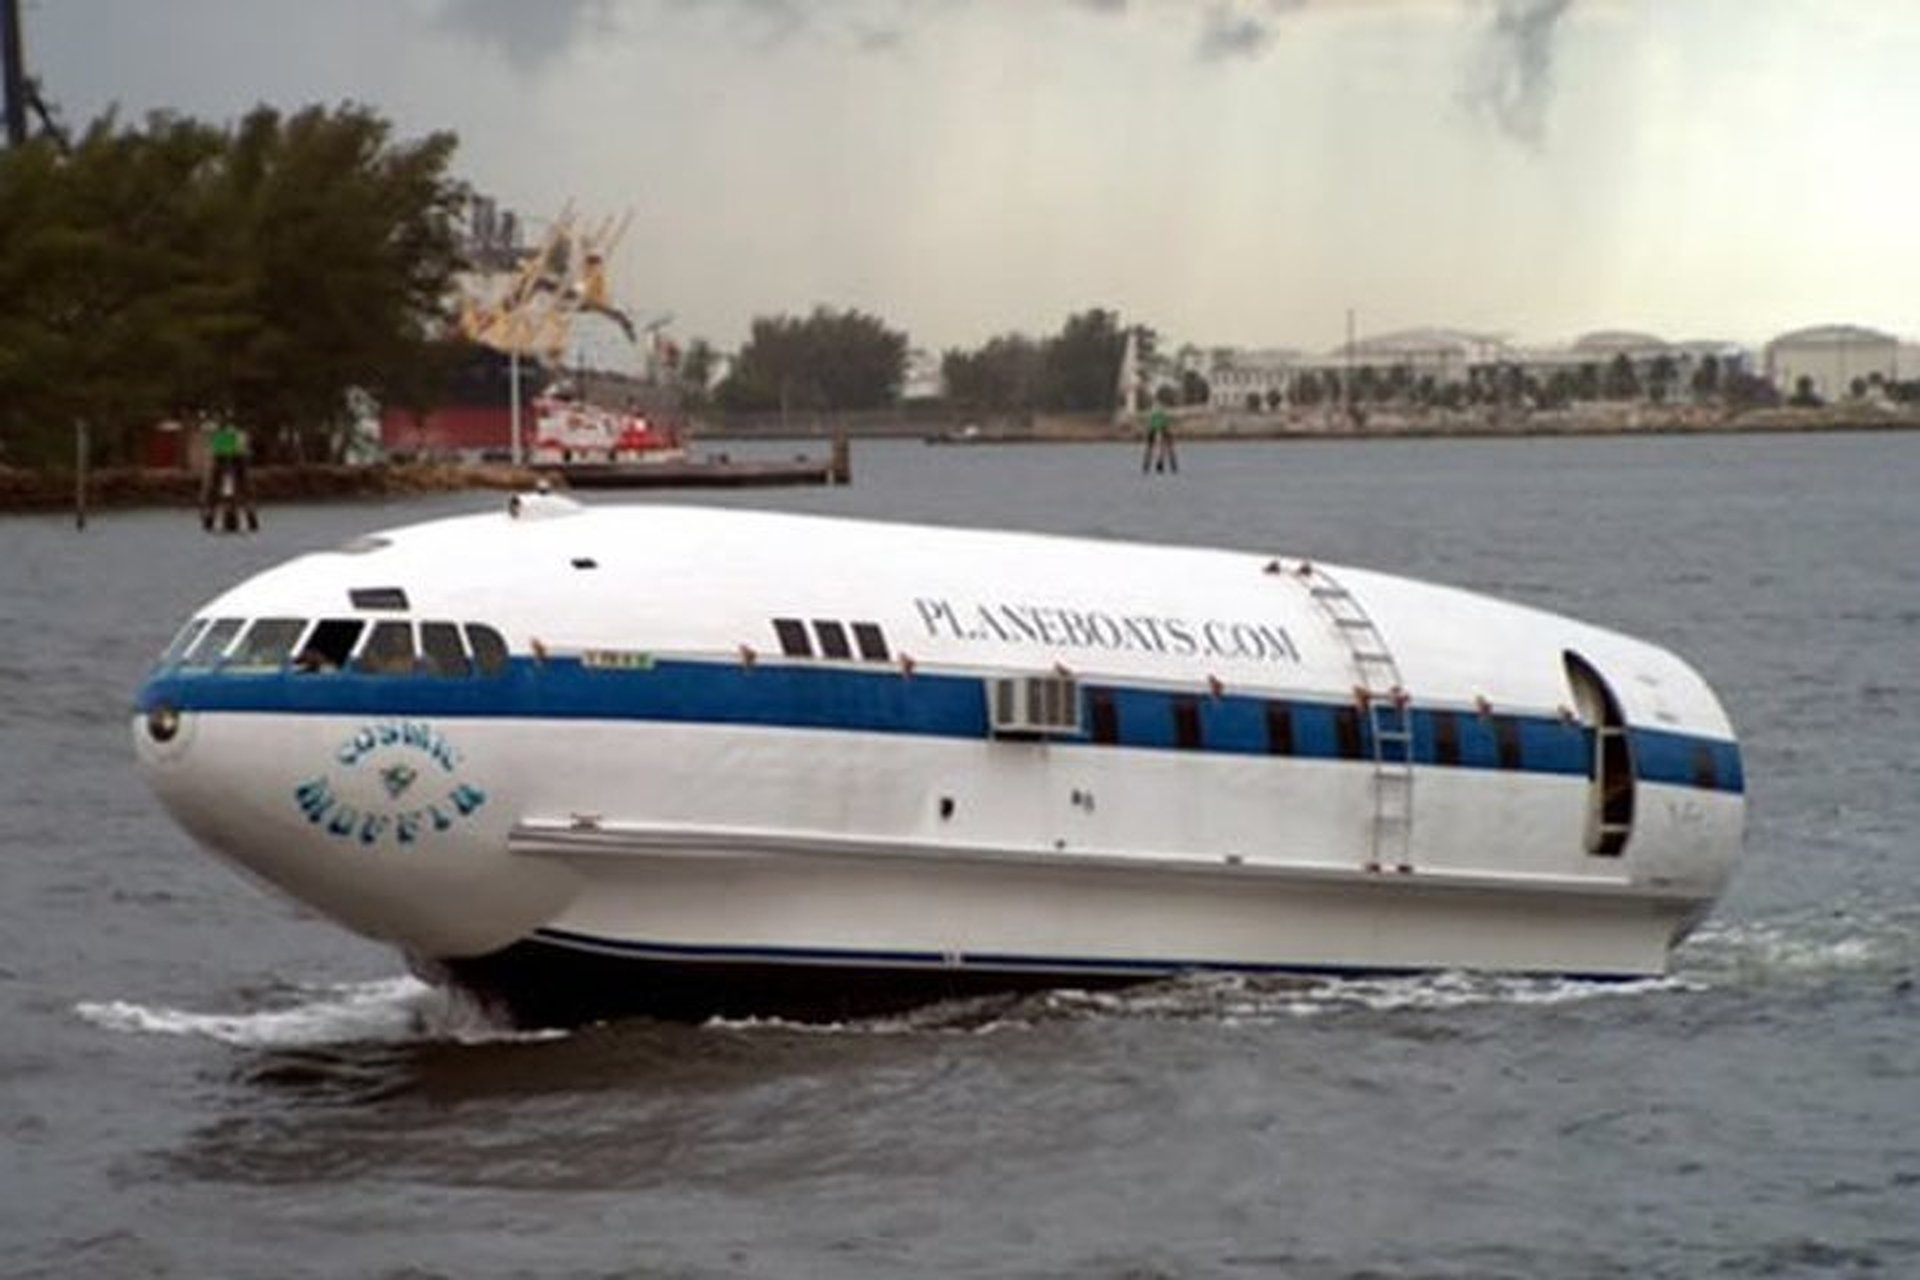 Cosmic Muffin: The Plane-Turned-Boat You've Always Wanted